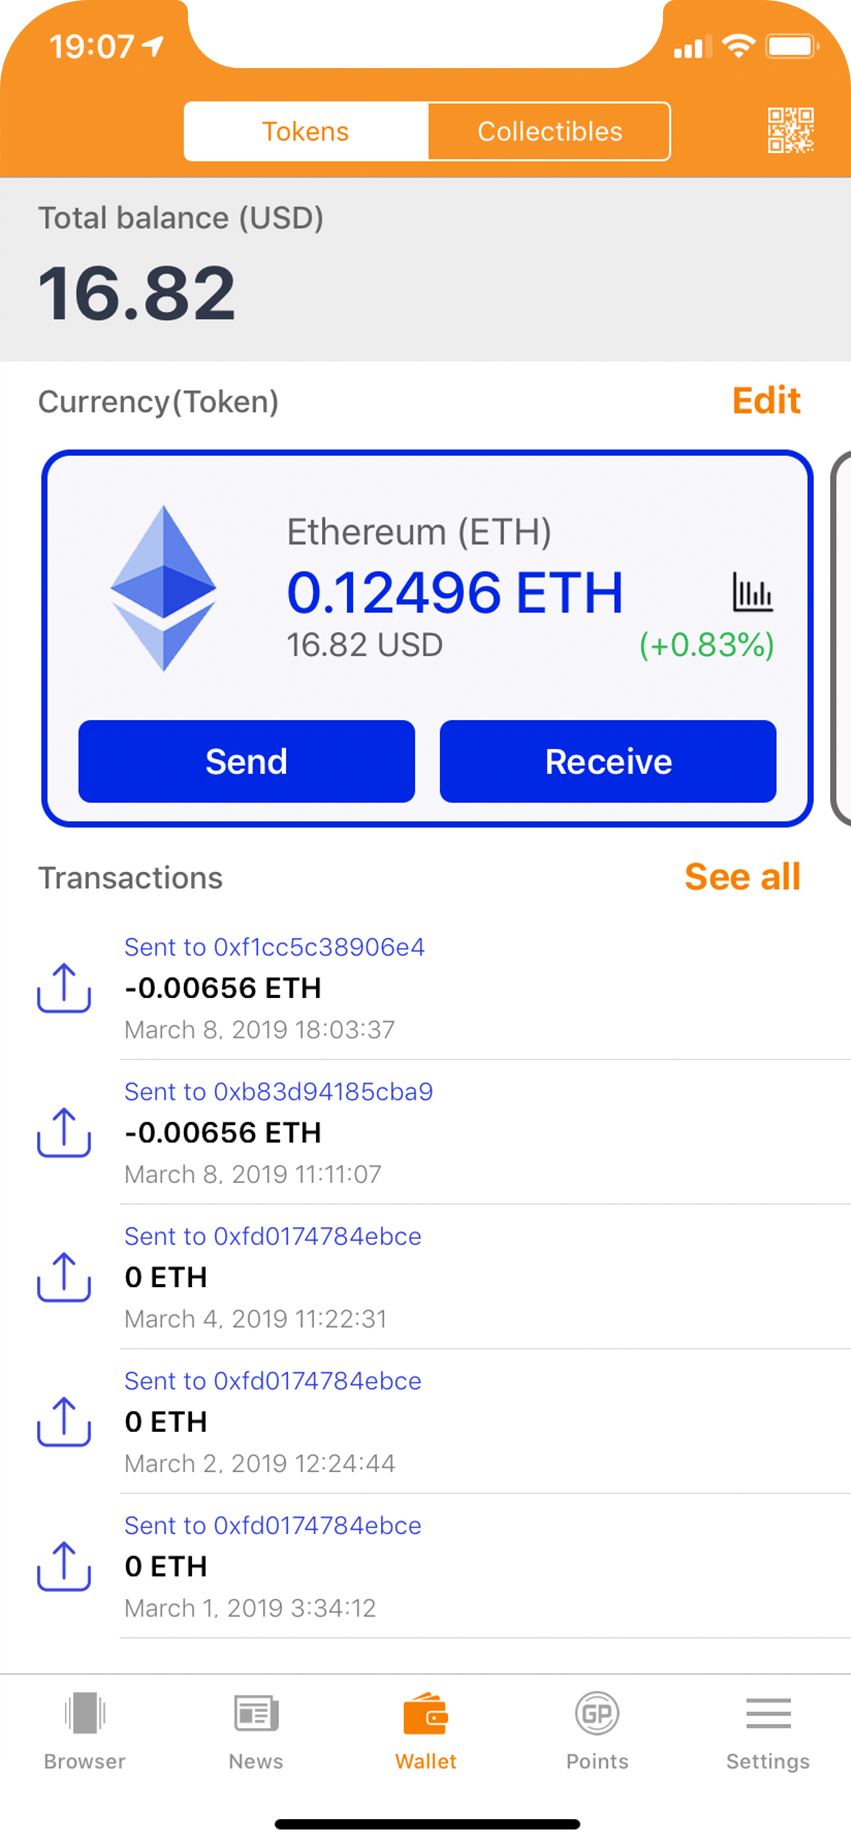 GO ! WALLET | ethereum wallet & DApp - You can earn crypto free